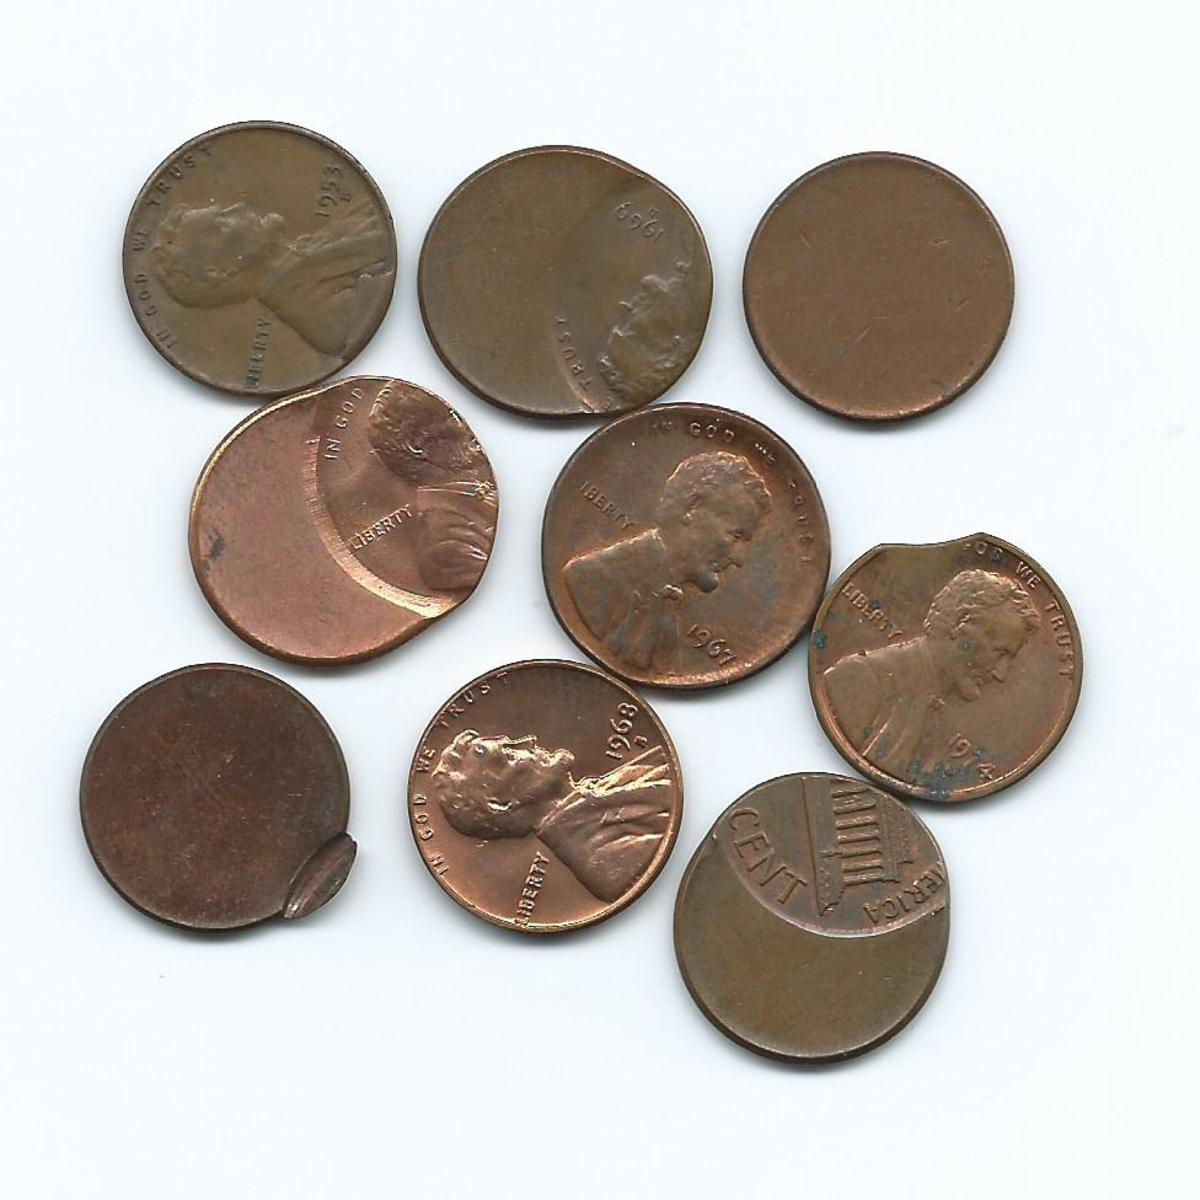 Collecting U.S. Mint Lincoln Cent Errors